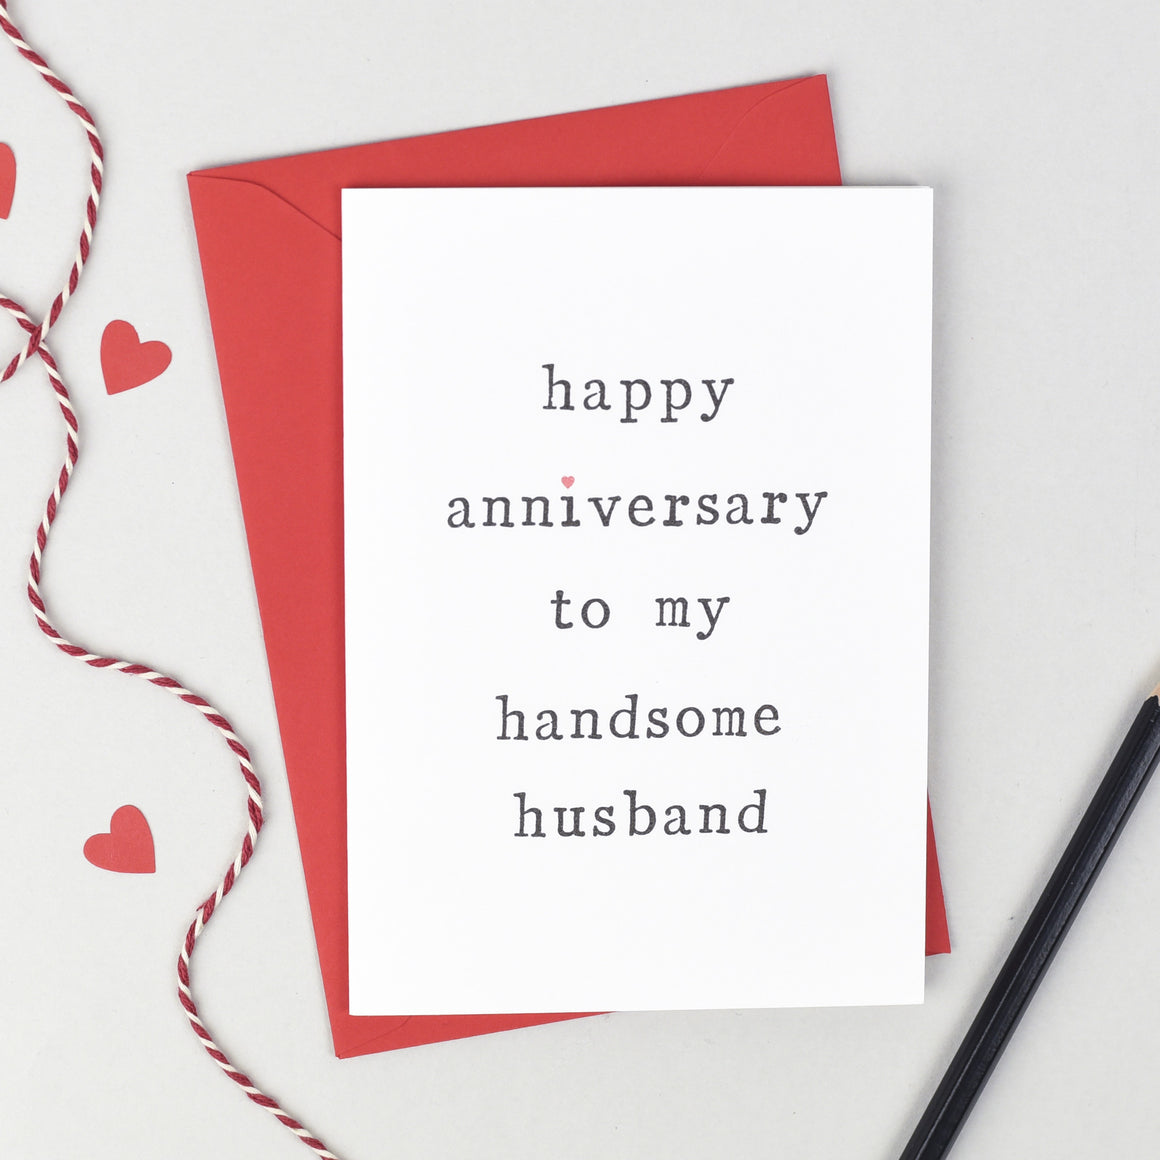 Husband or Wife Anniversary Card - The Two Wagtails